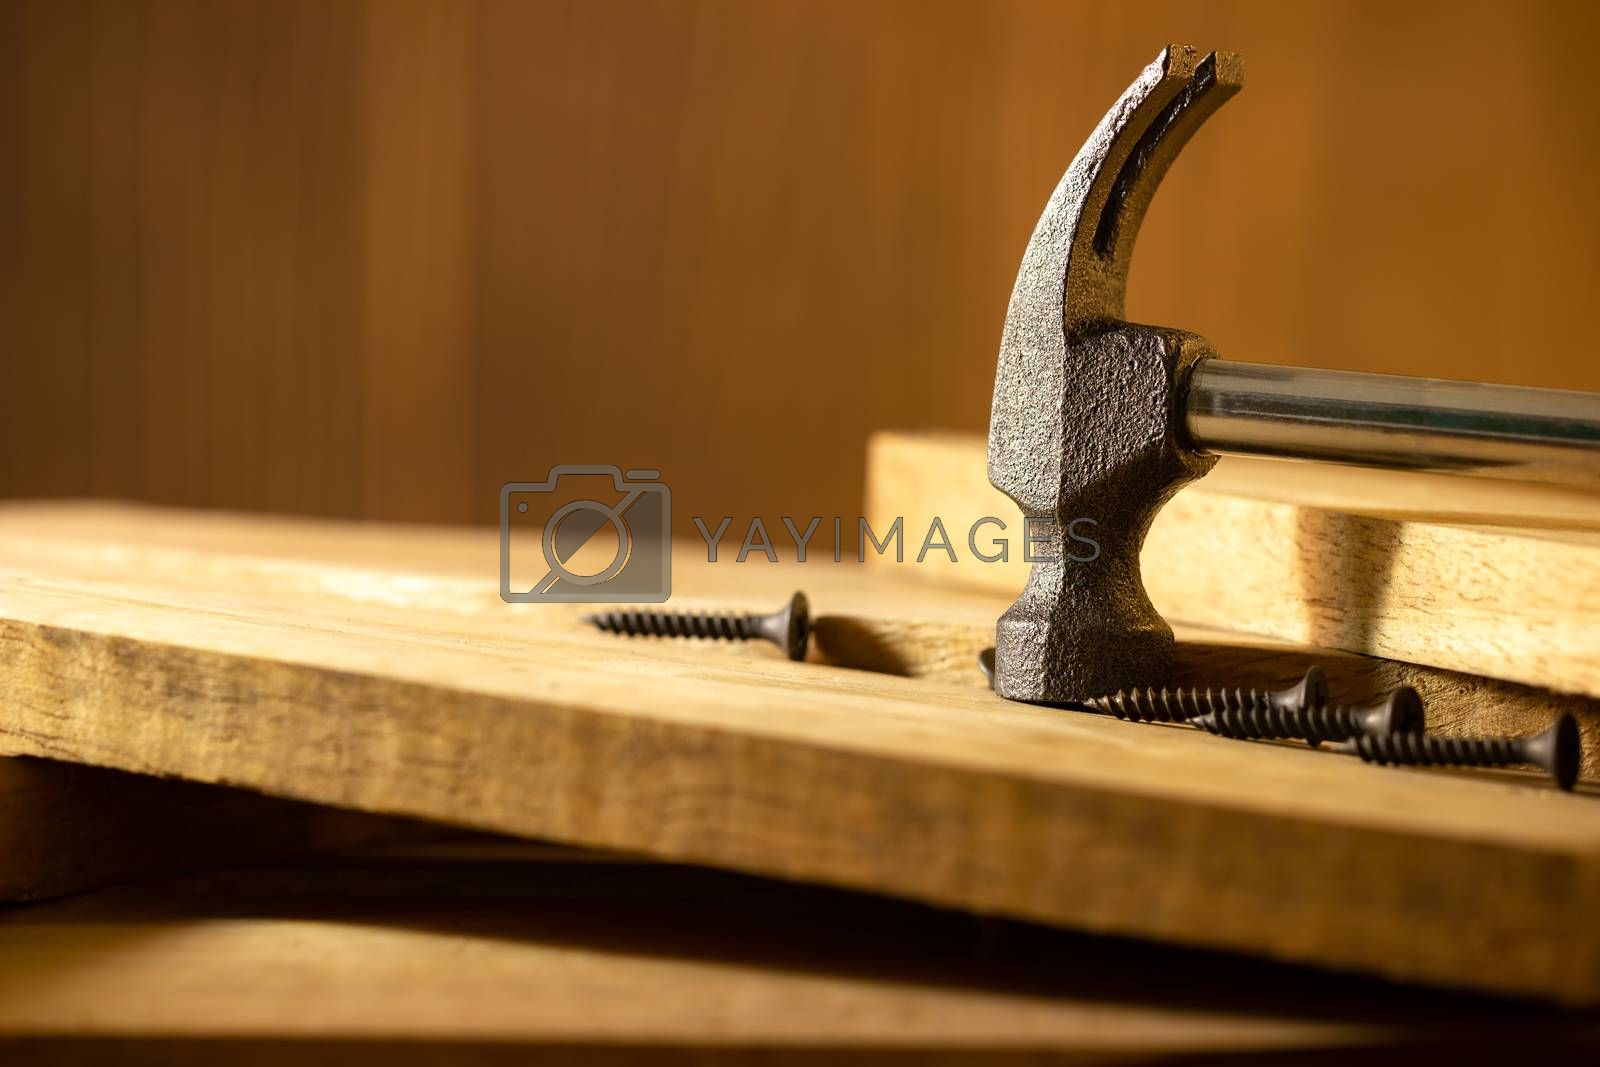 Hammer and screw on lumber in lighting and shadow of the sunshine in morning. The concept of woodcraft or carpentry.